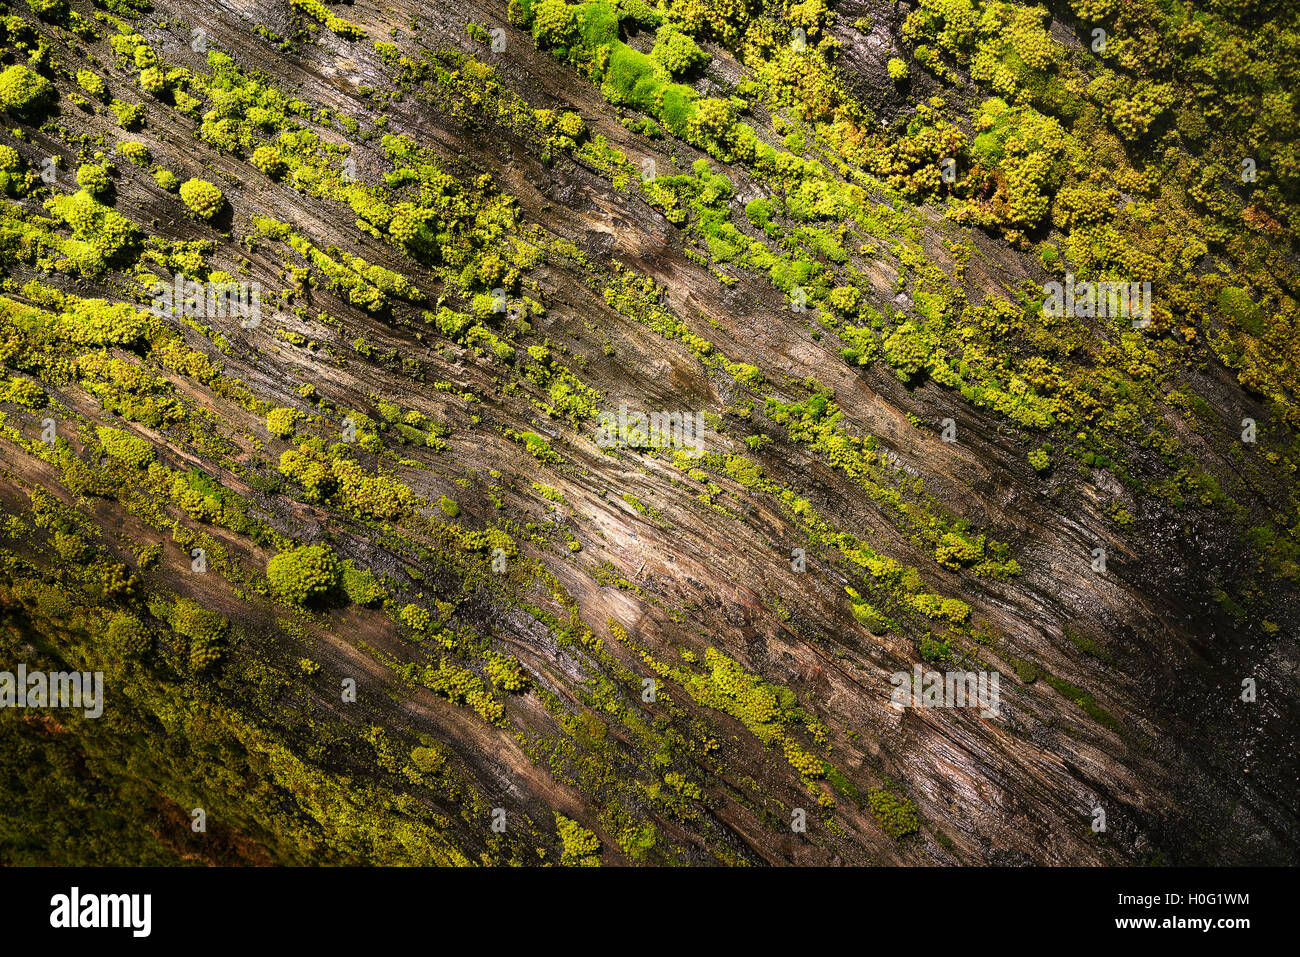 Moss covered sequoia tree in Sequoia National Park Stock Photo